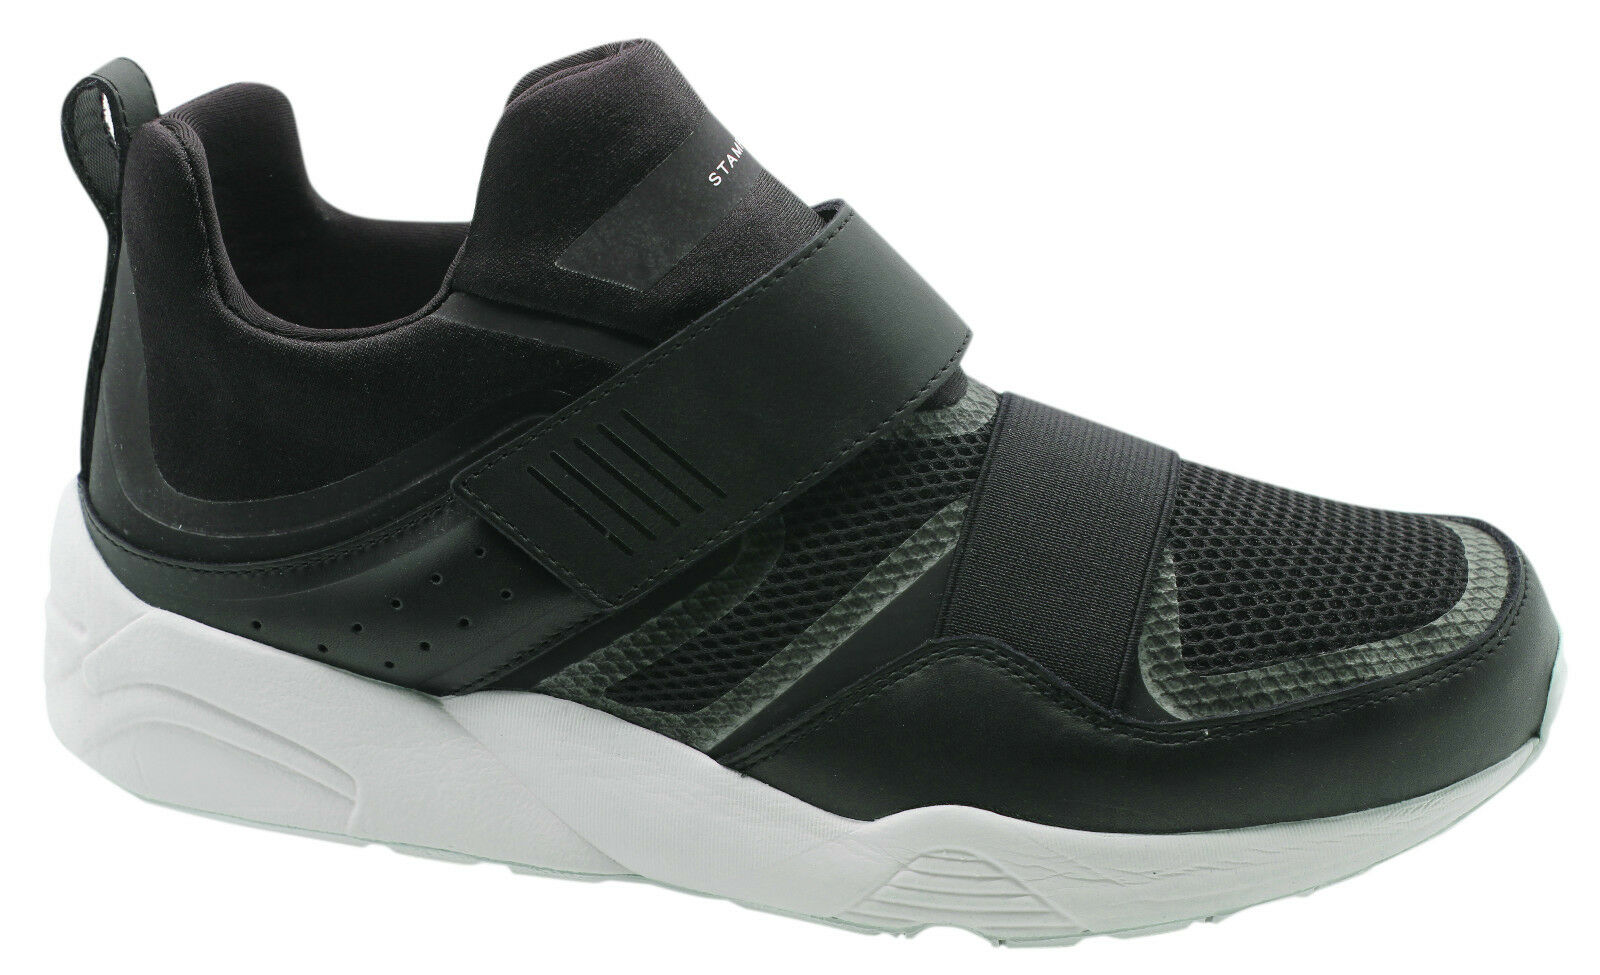 Puma Blaze Of homme Glory Strap X Stampd homme Of Trainers Slip On Chaussure 359813 8a269f